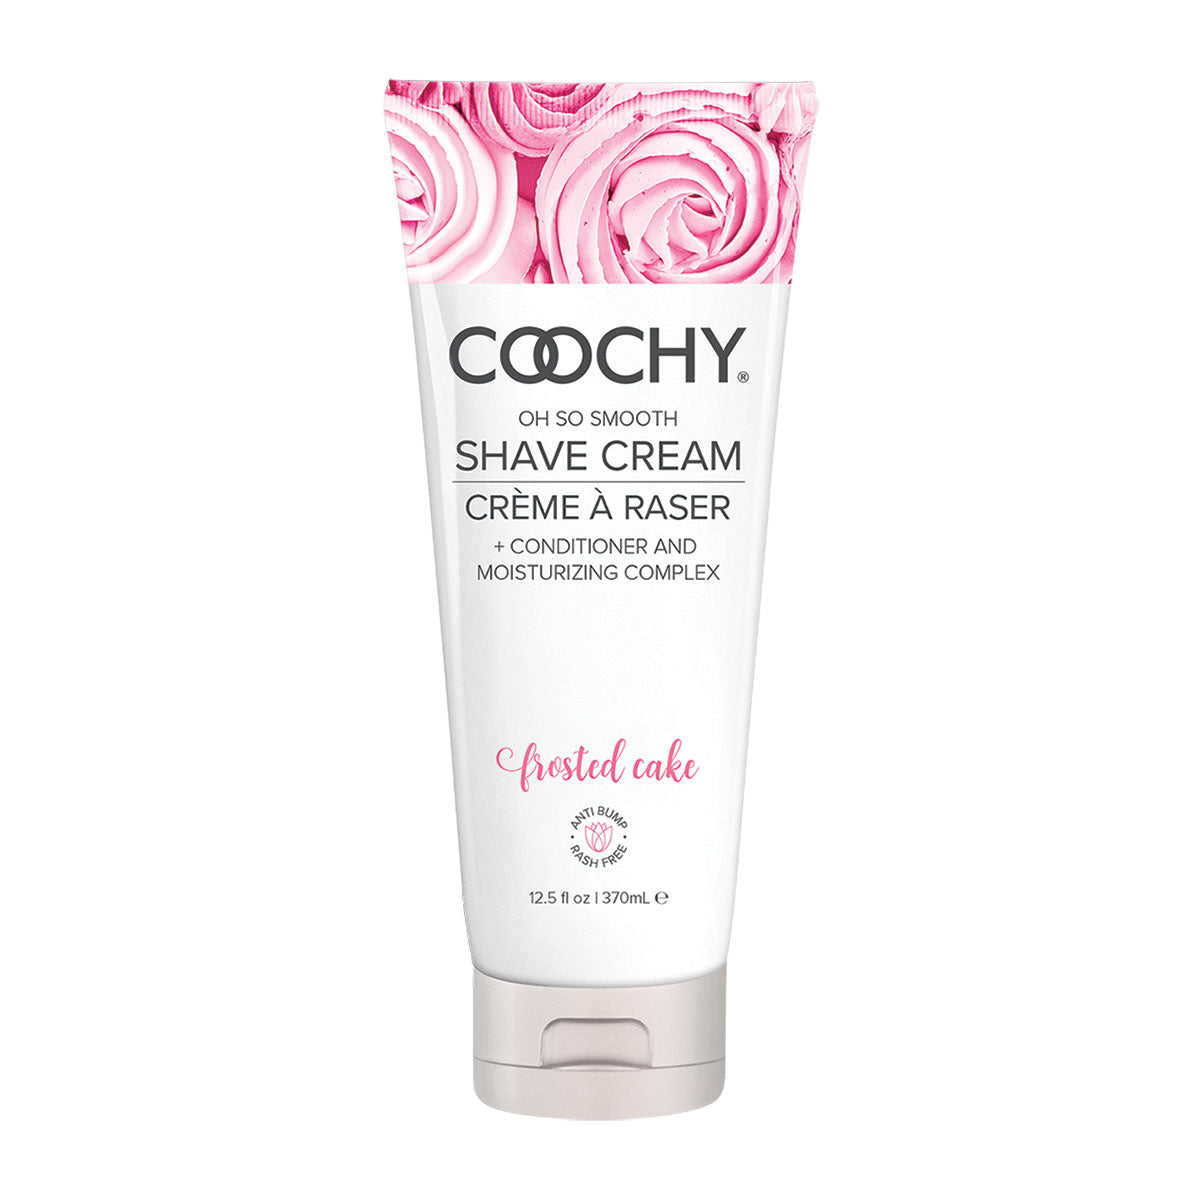 Coochy Oh So Smooth Shave Cream - Frosted Cake 12.5